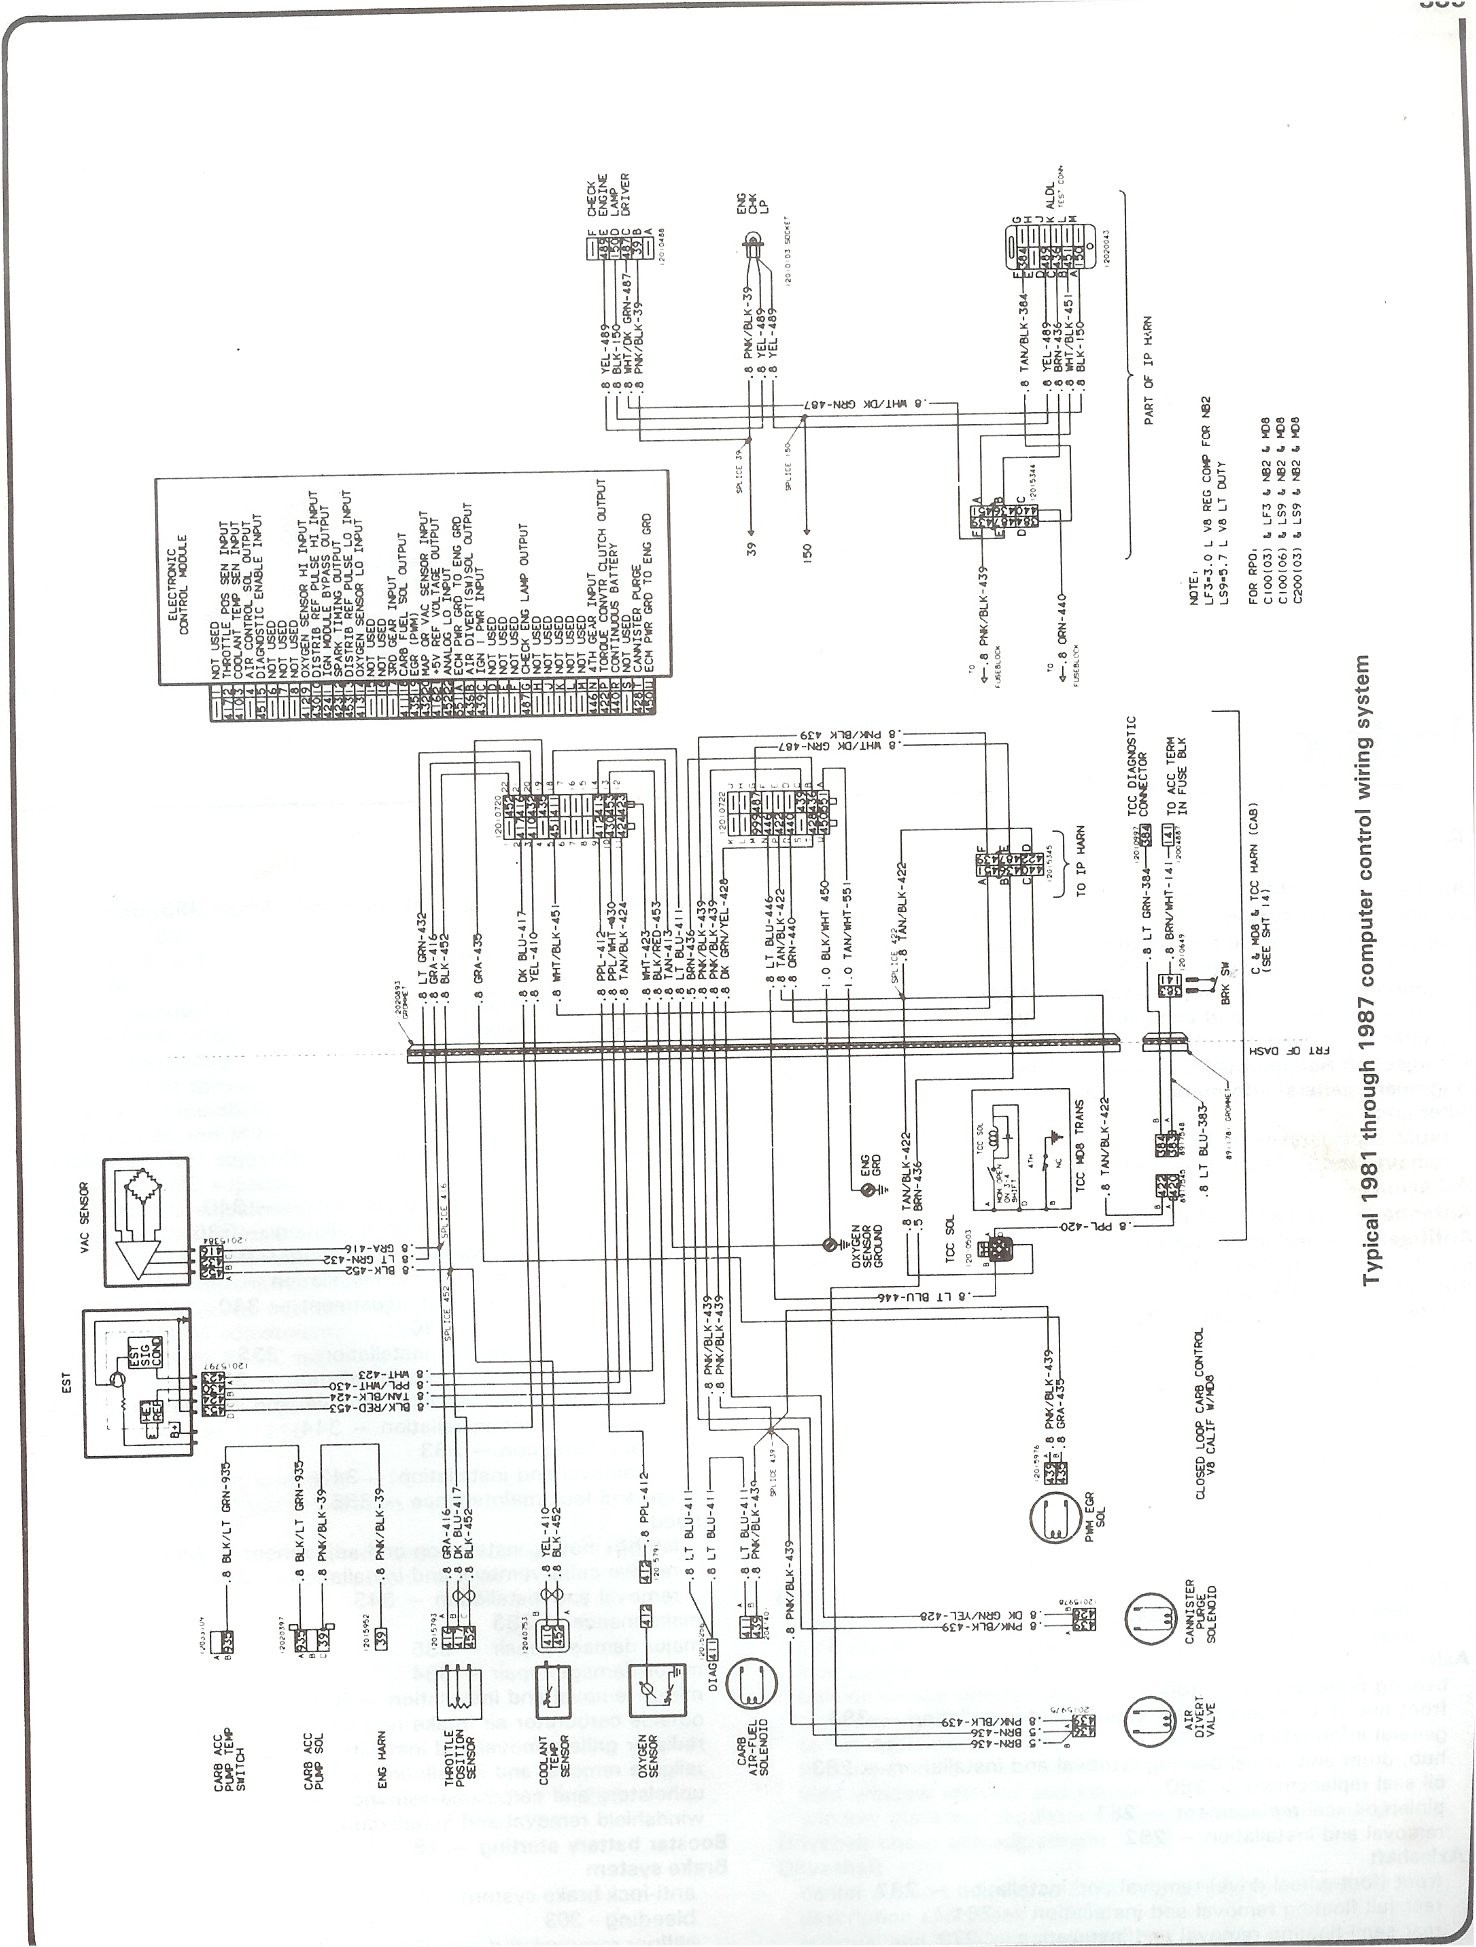 hight resolution of 87 chevy fuse diagram wiring diagrams konsult87 chevy fuse diagram wiring diagram centre 87 chevy pickup